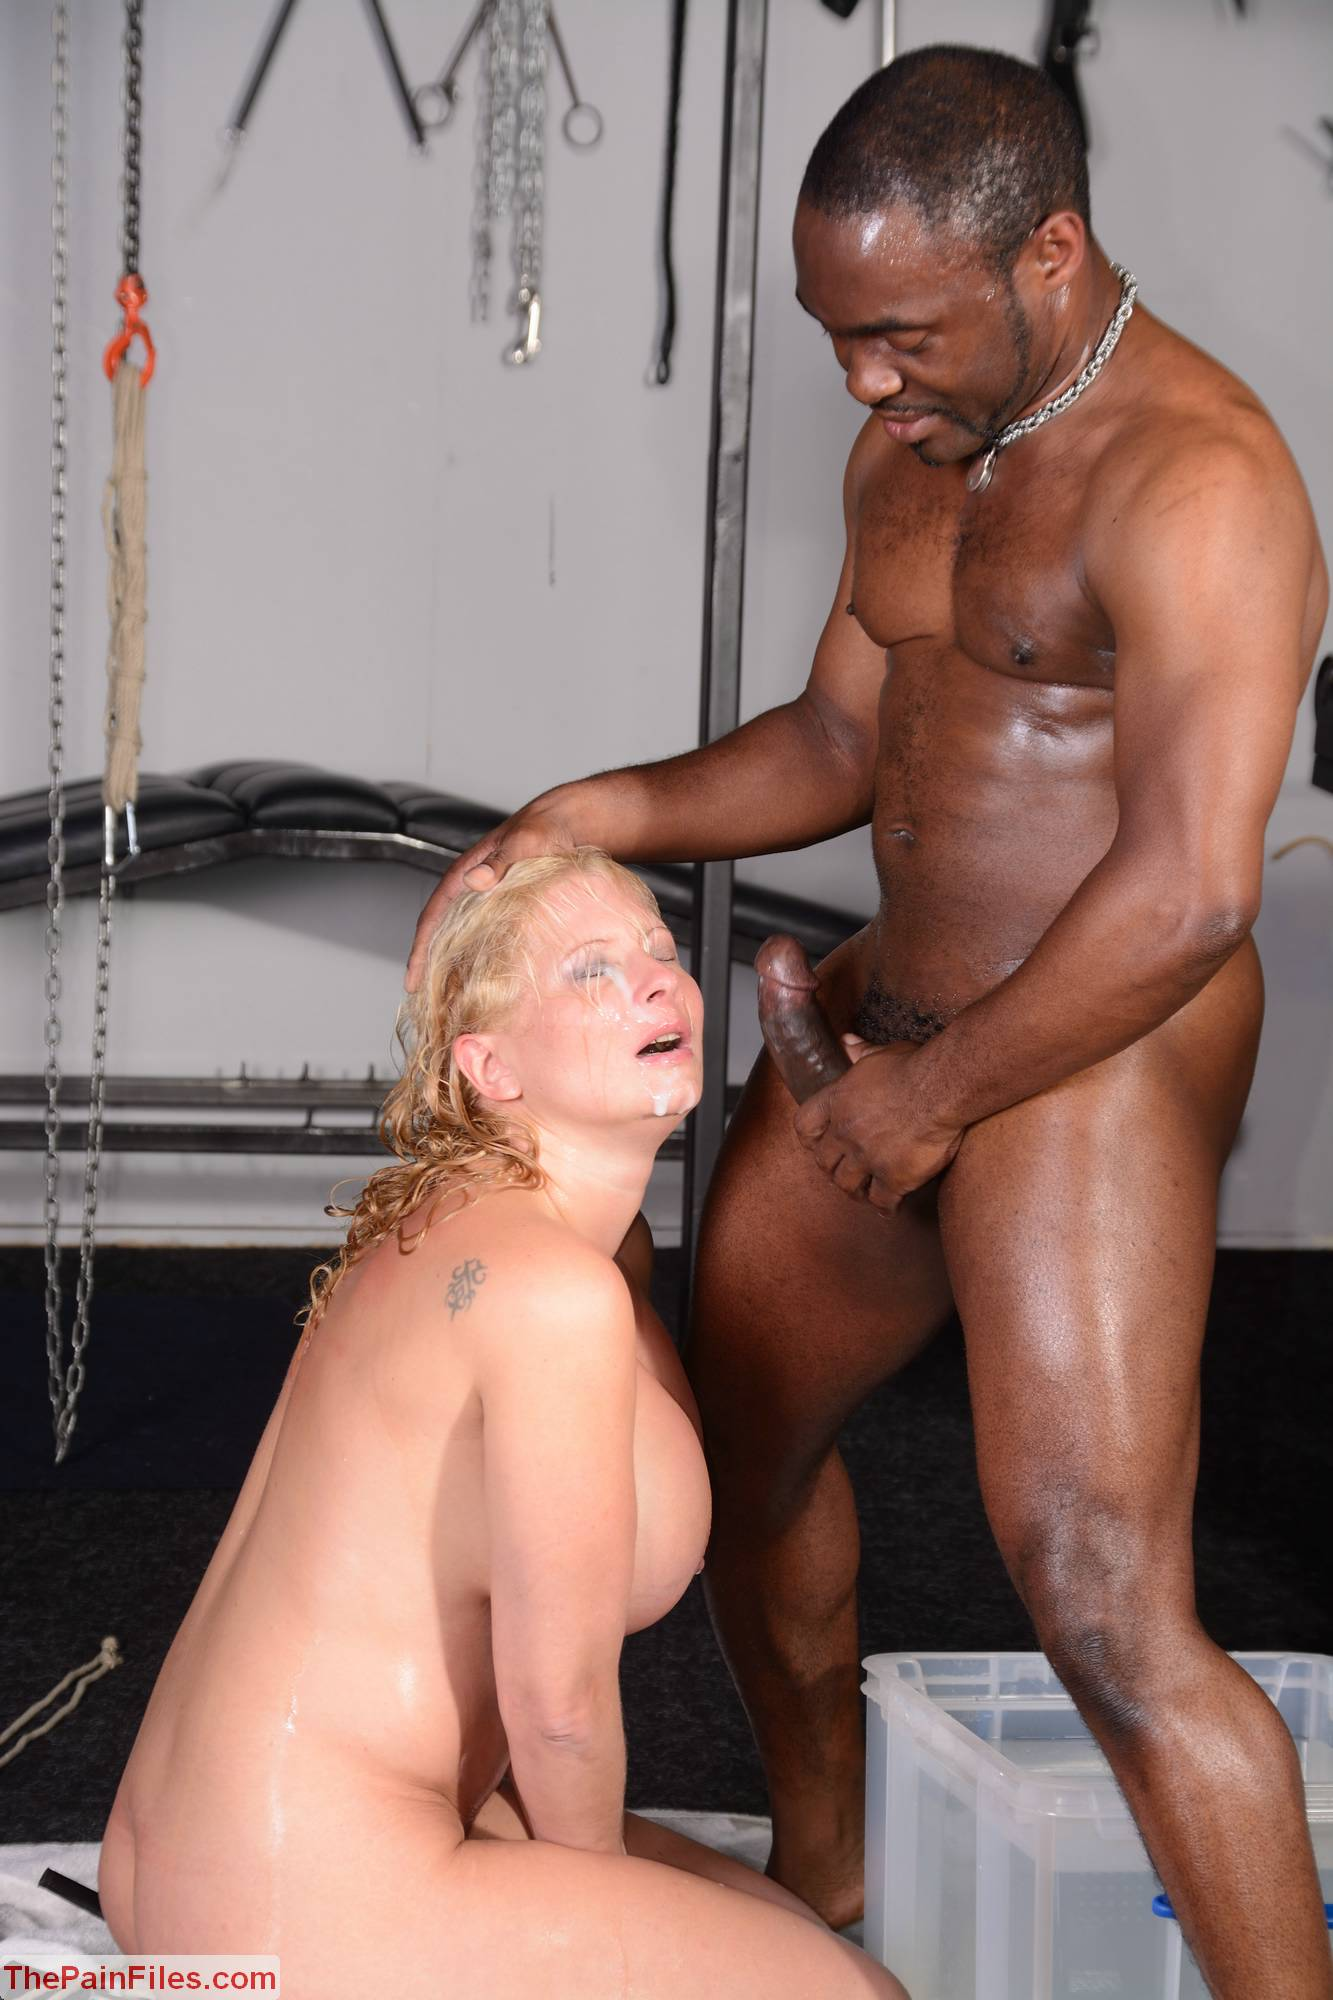 interracial sex Extreme